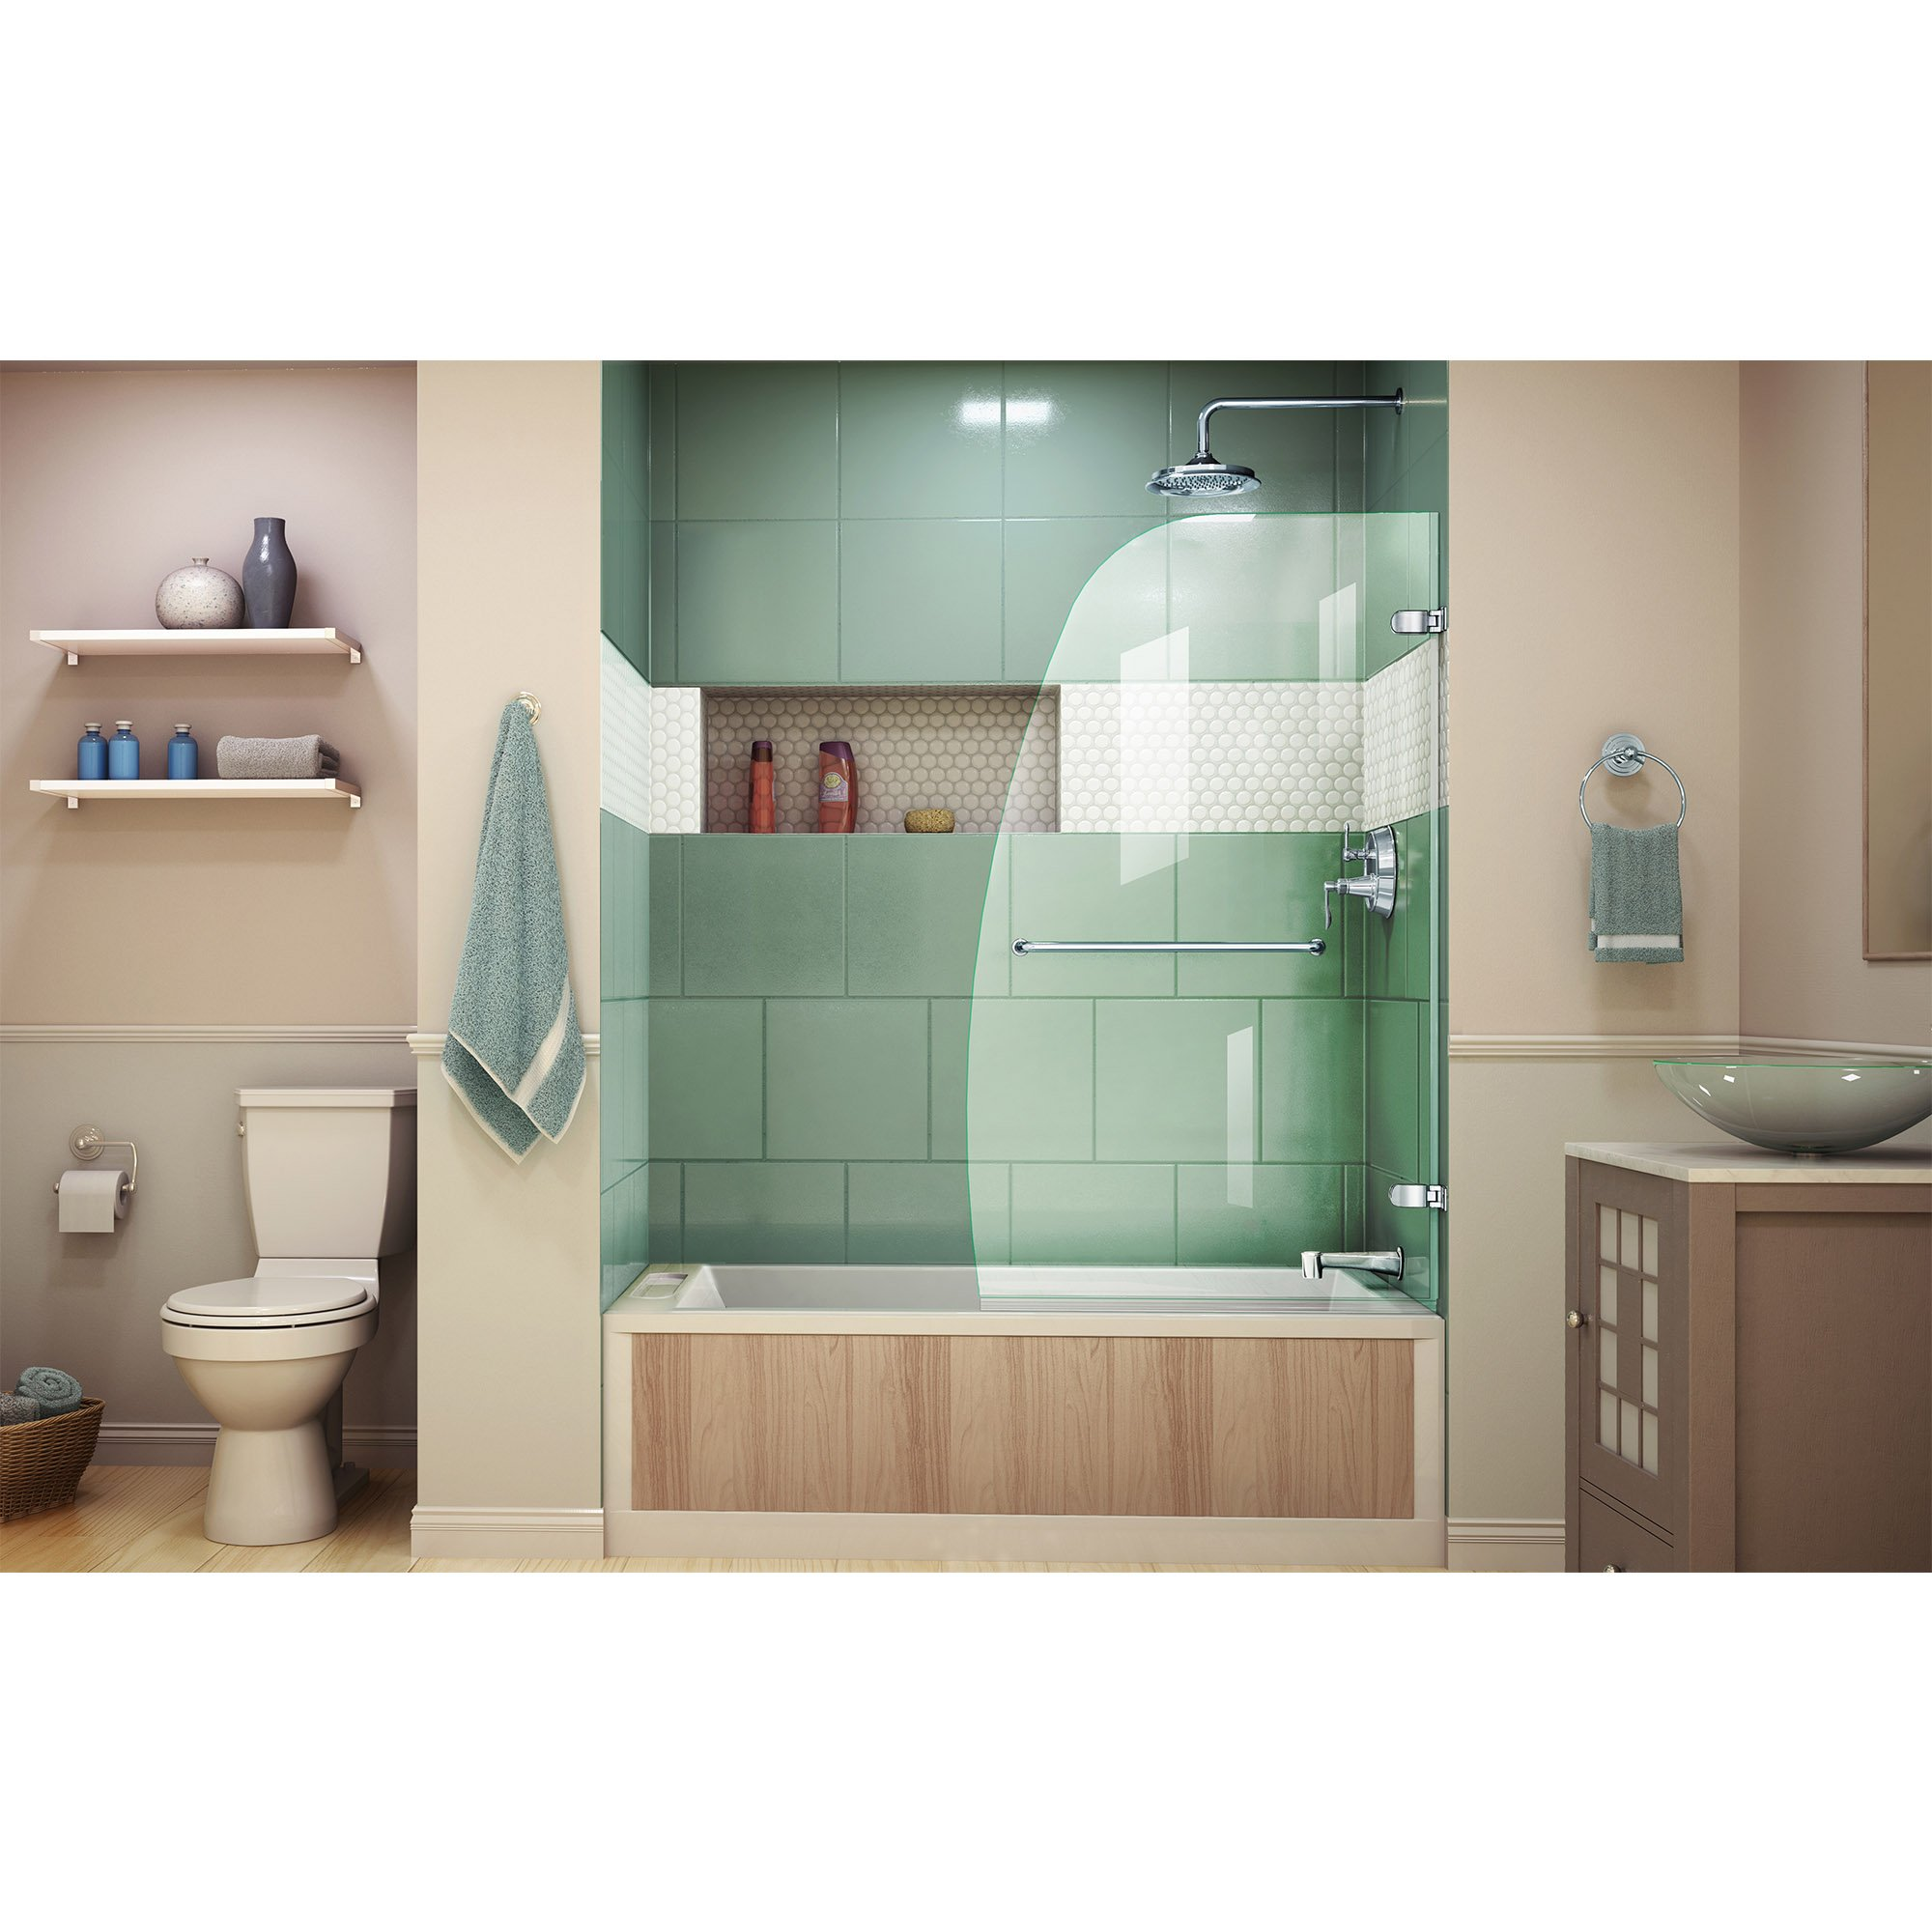 DreamLine Aqua Uno 34 in. Width, Frameless Hinged Tub Door, 1/4'' Glass, Chrome Finish by DreamLine (Image #3)